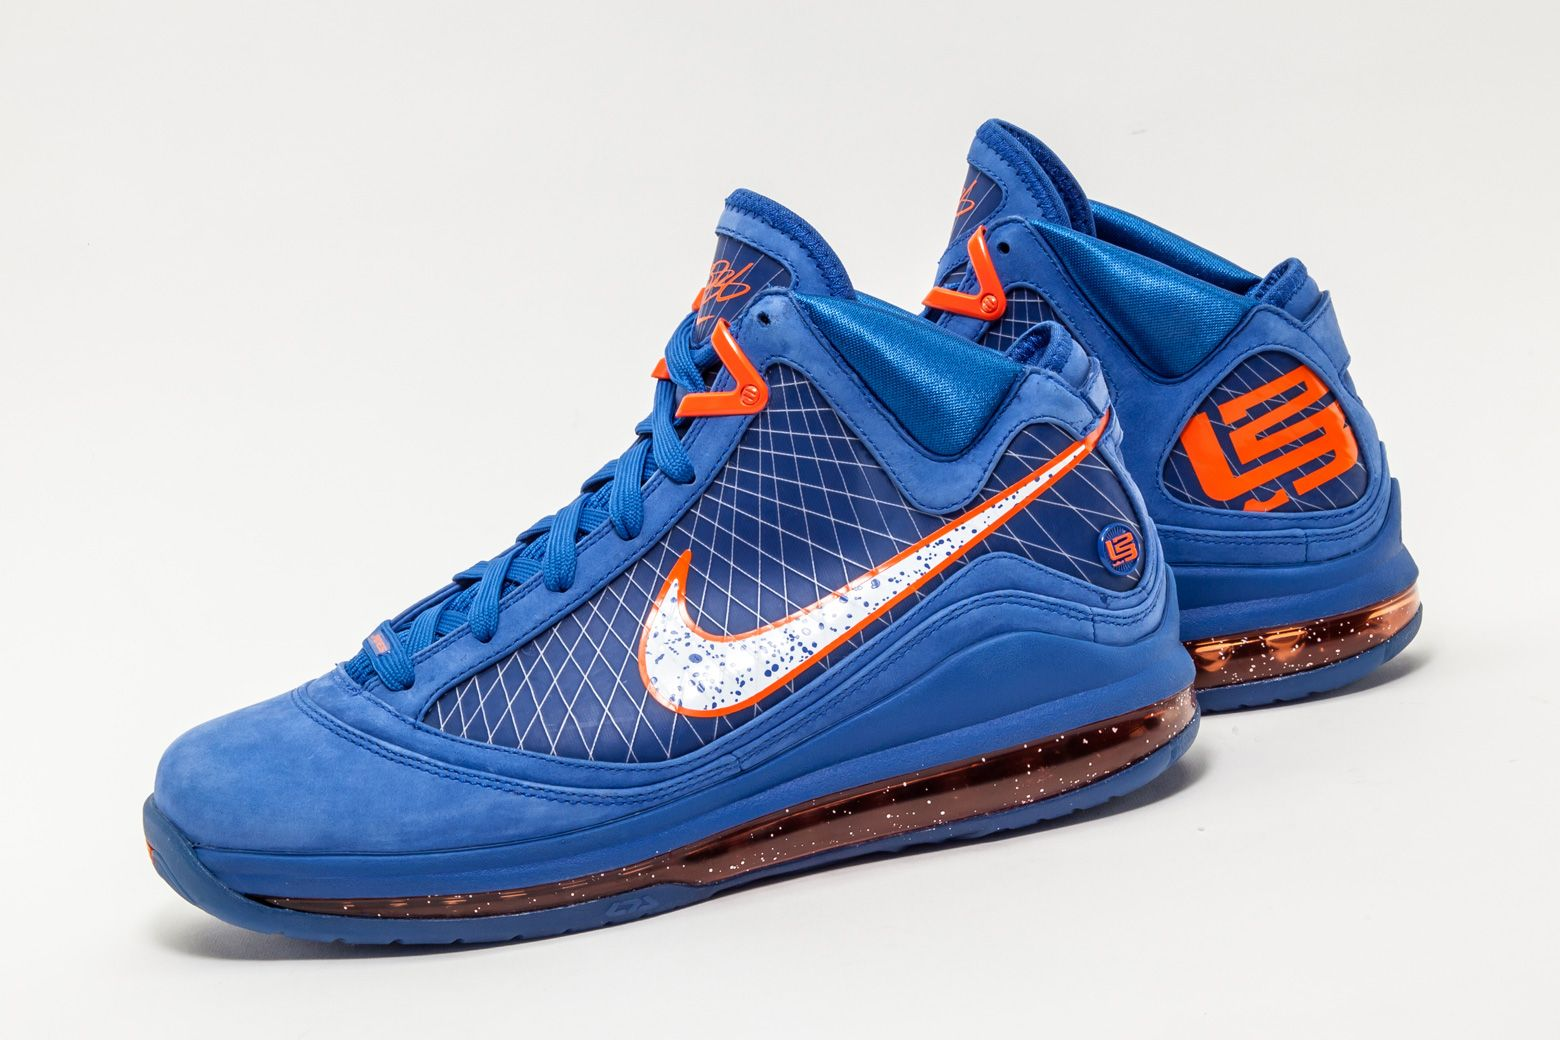 eaee848edbc This very rare Nike Air Max Lebron 7 PE